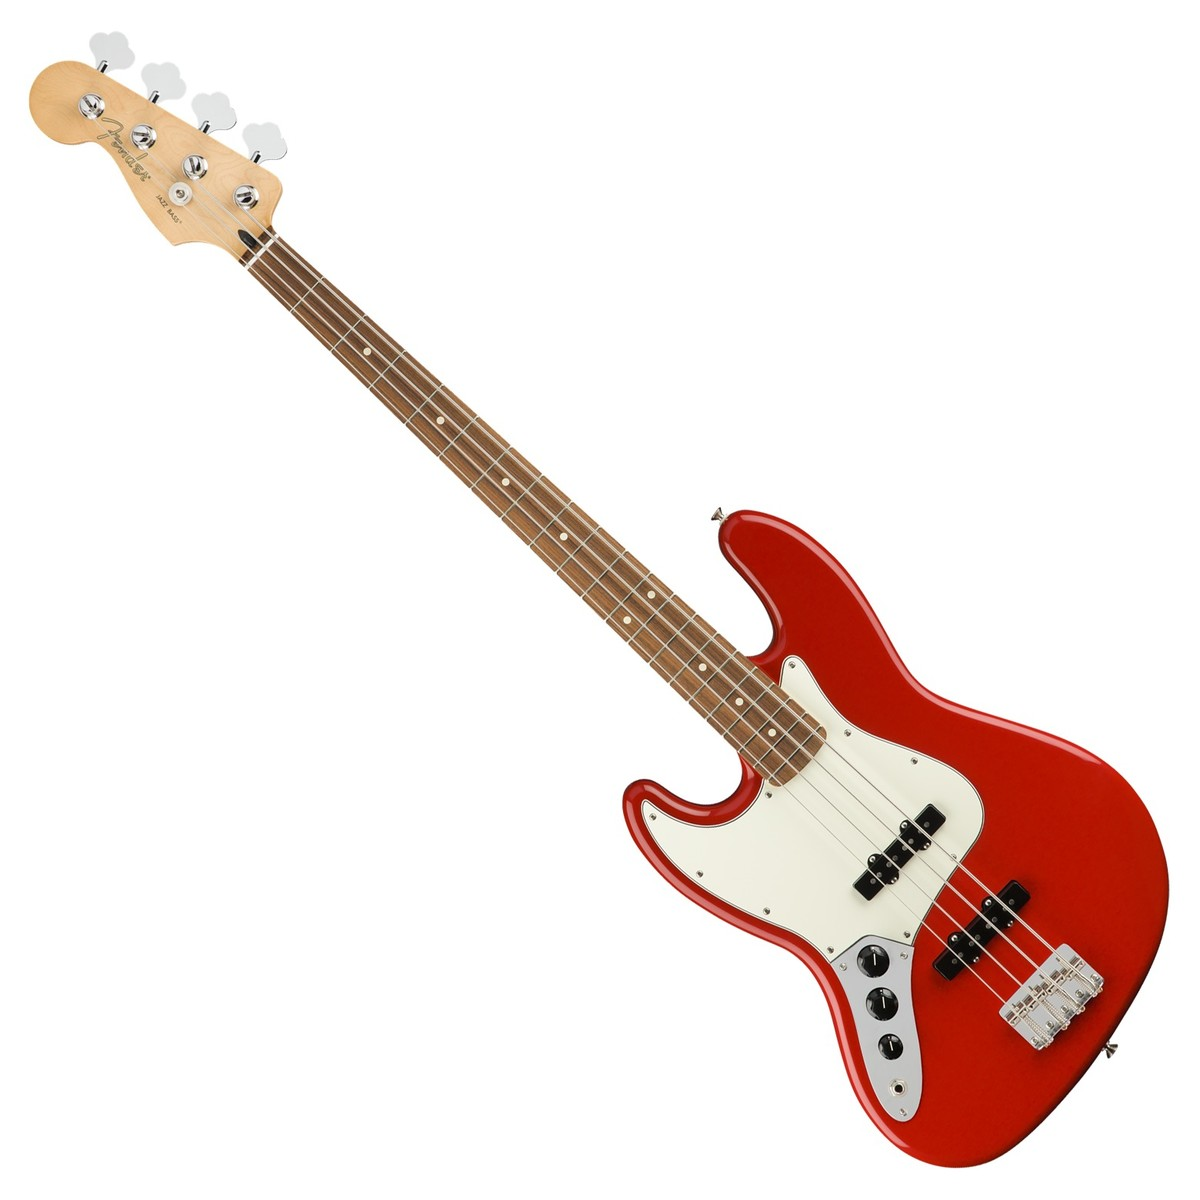 fender player jazz bass pf left handed sonic red at gear4music. Black Bedroom Furniture Sets. Home Design Ideas